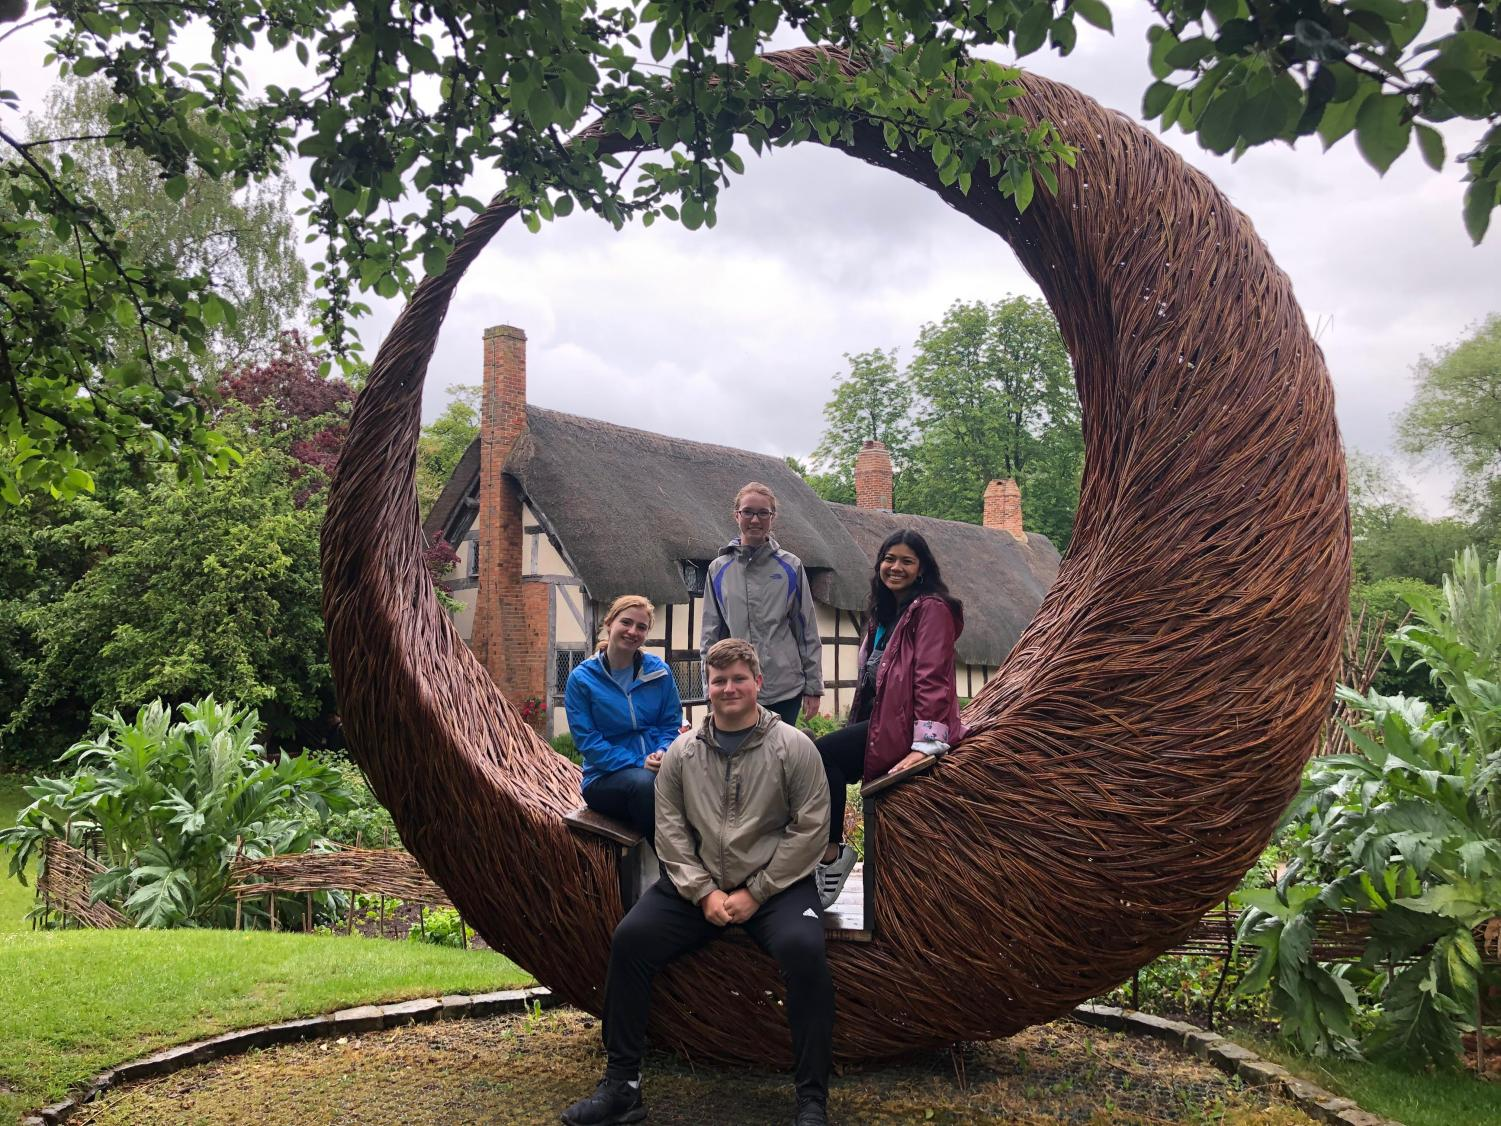 While in England, members of the Explorer's Club visited William Shakespeare's birthplace. Pictured are, from left, Ashley Jenkins, David DuVall, Megan Patterson and Tanika Kounhavong.